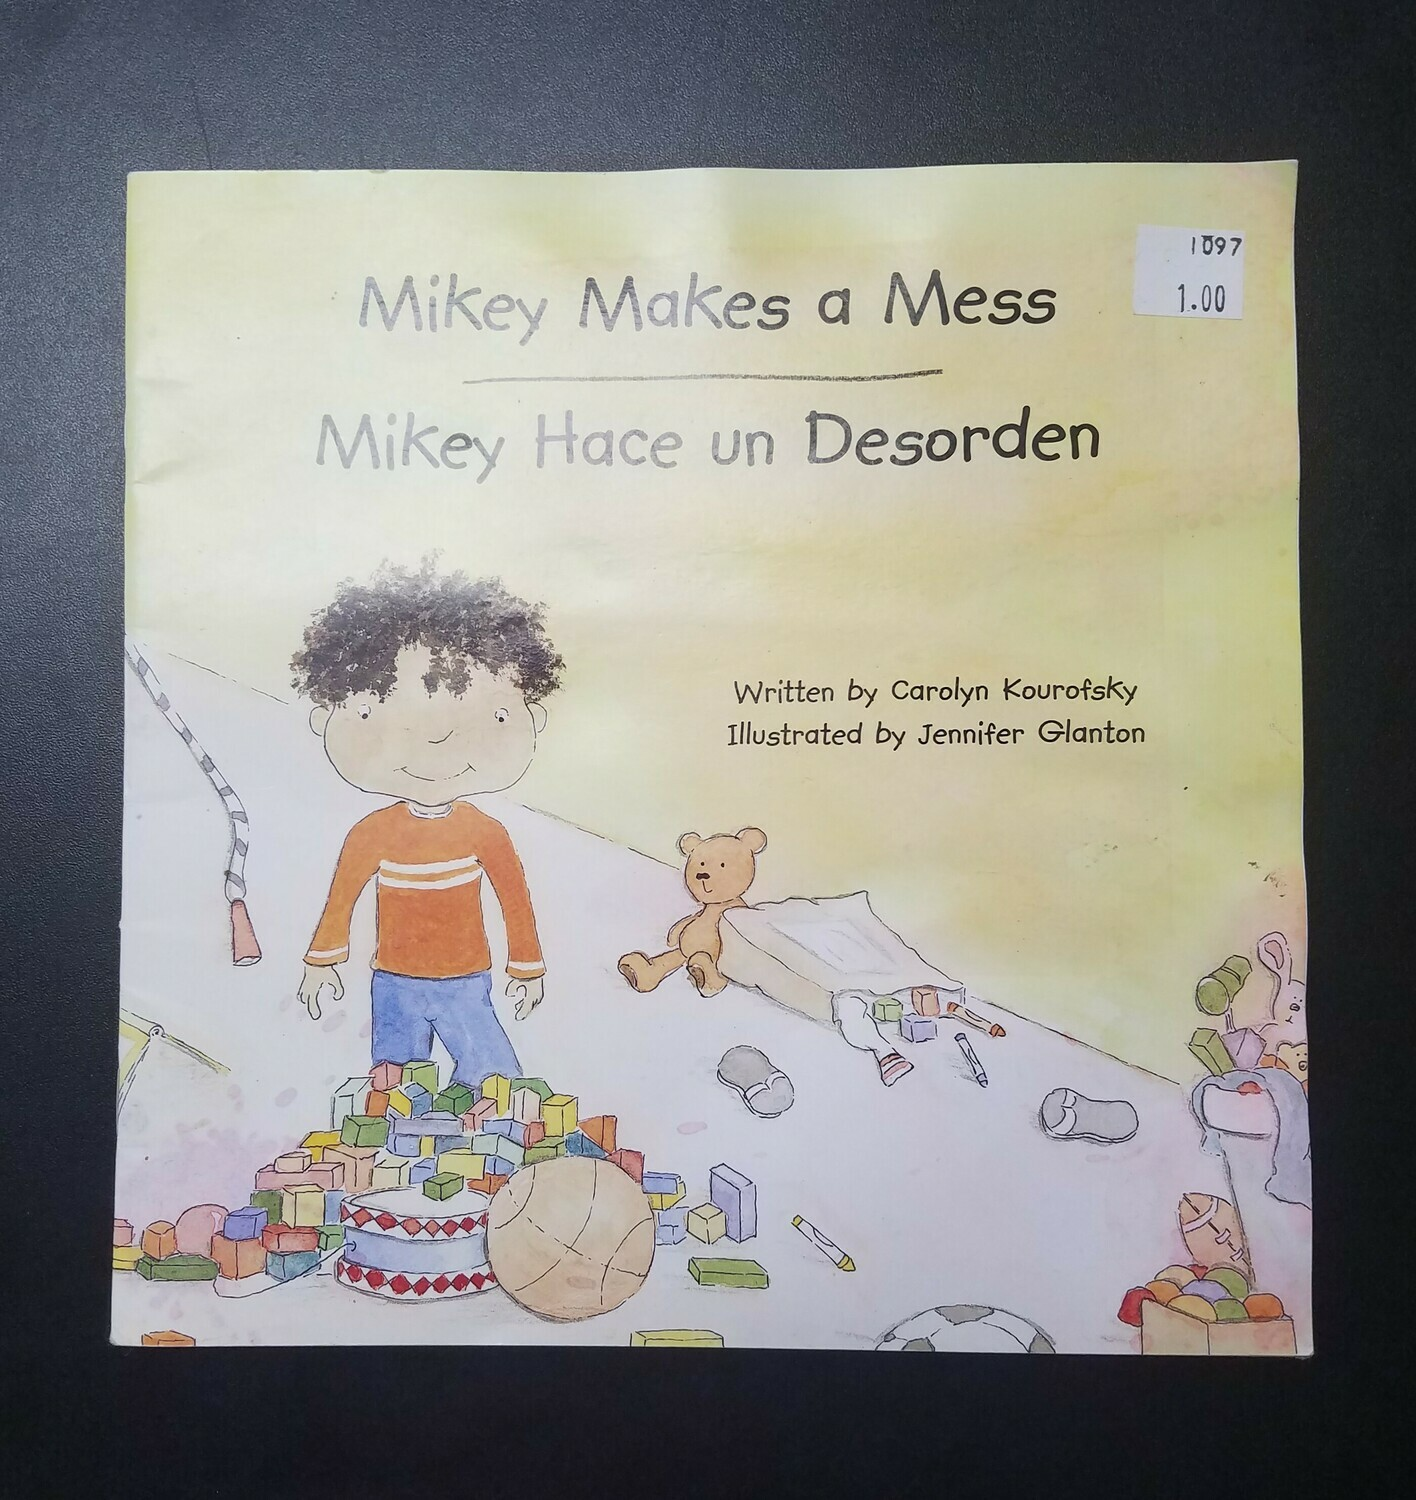 Mikey Makes a Mess by Carolyn Kourofsky